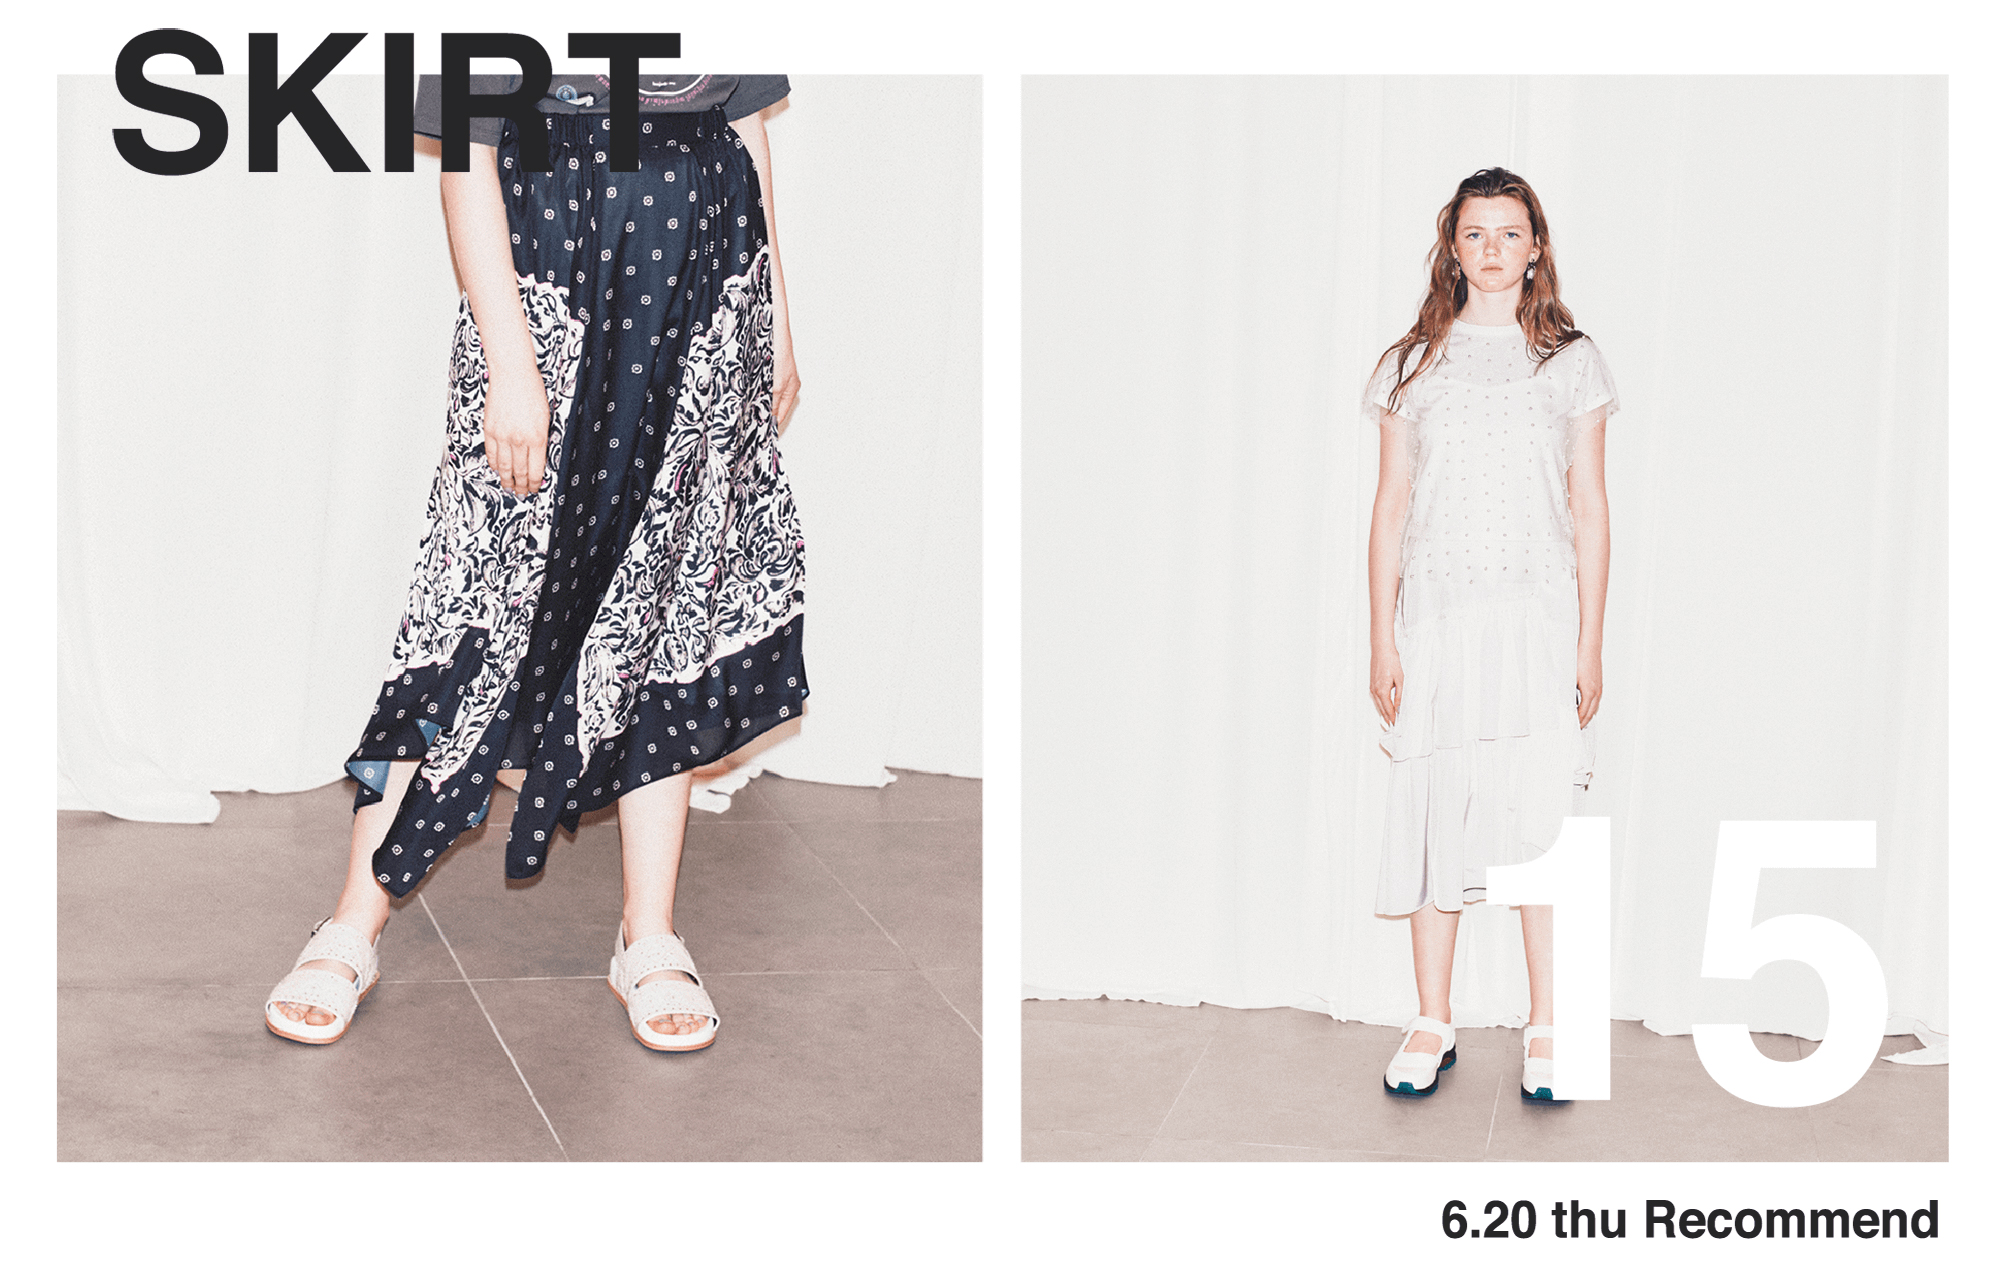 SKIRT RECOMMEND 15 ITEMS